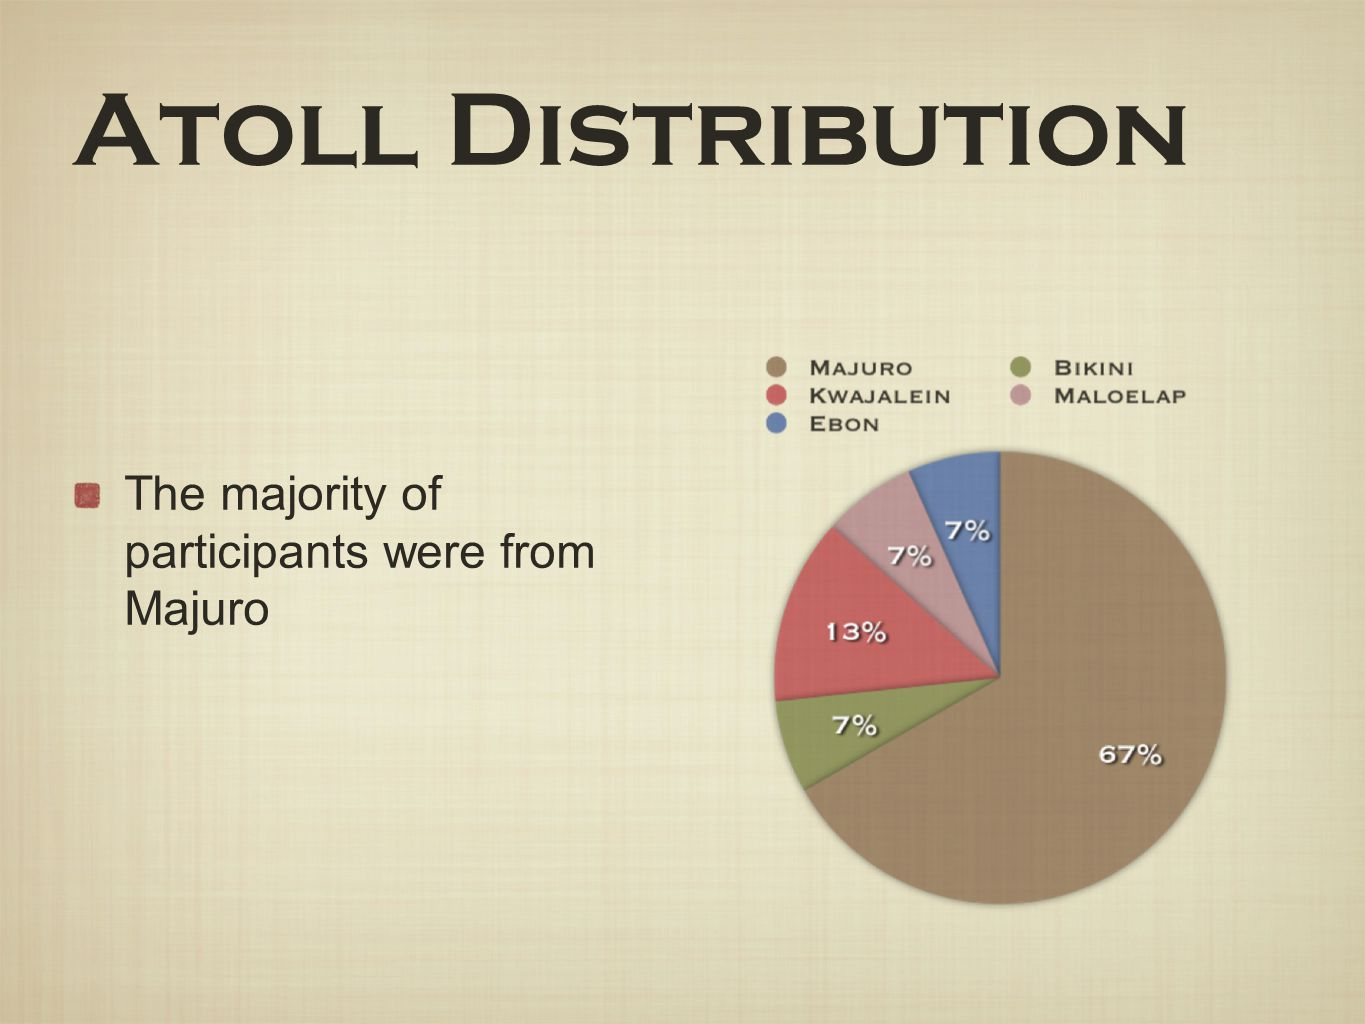 Atoll Distribution The majority of participants were from Majuro